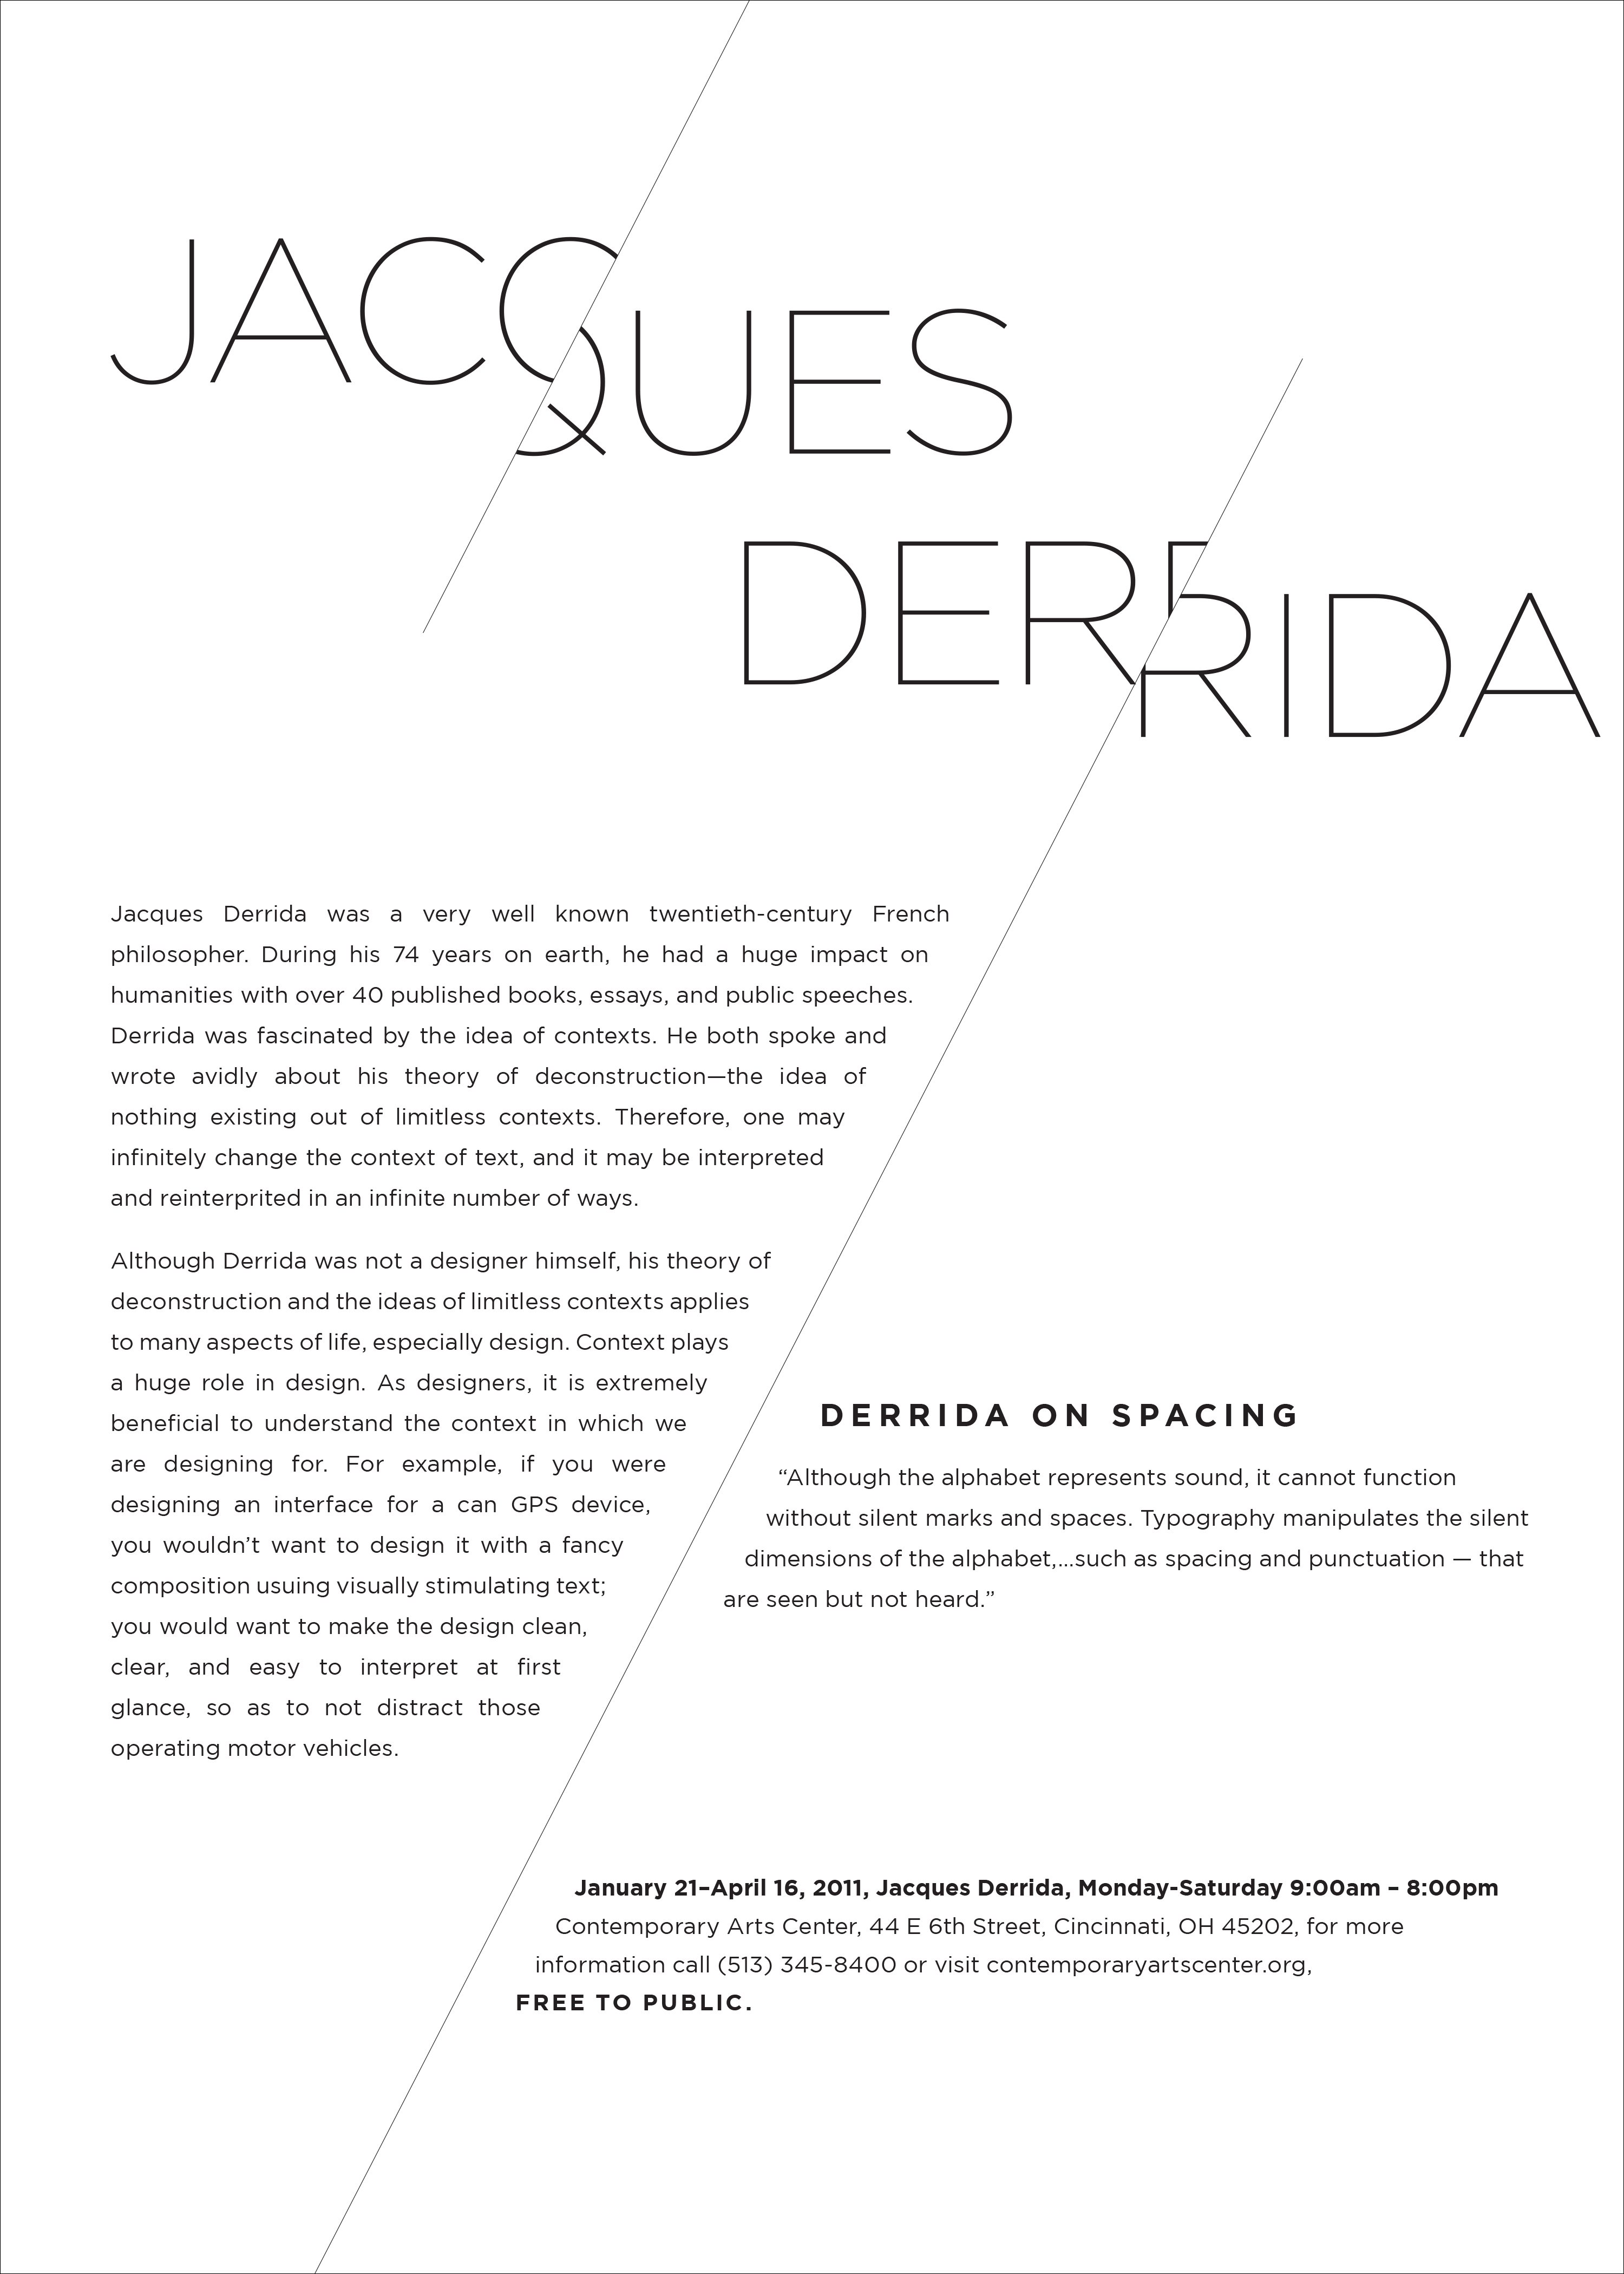 Jacques Derrida And His Deconstruction Essay  Essay Academic  Jacques Derrida And His Deconstruction Essay Reflective Essay On High School also Business Plan Writer New Orleans  Do My Homework